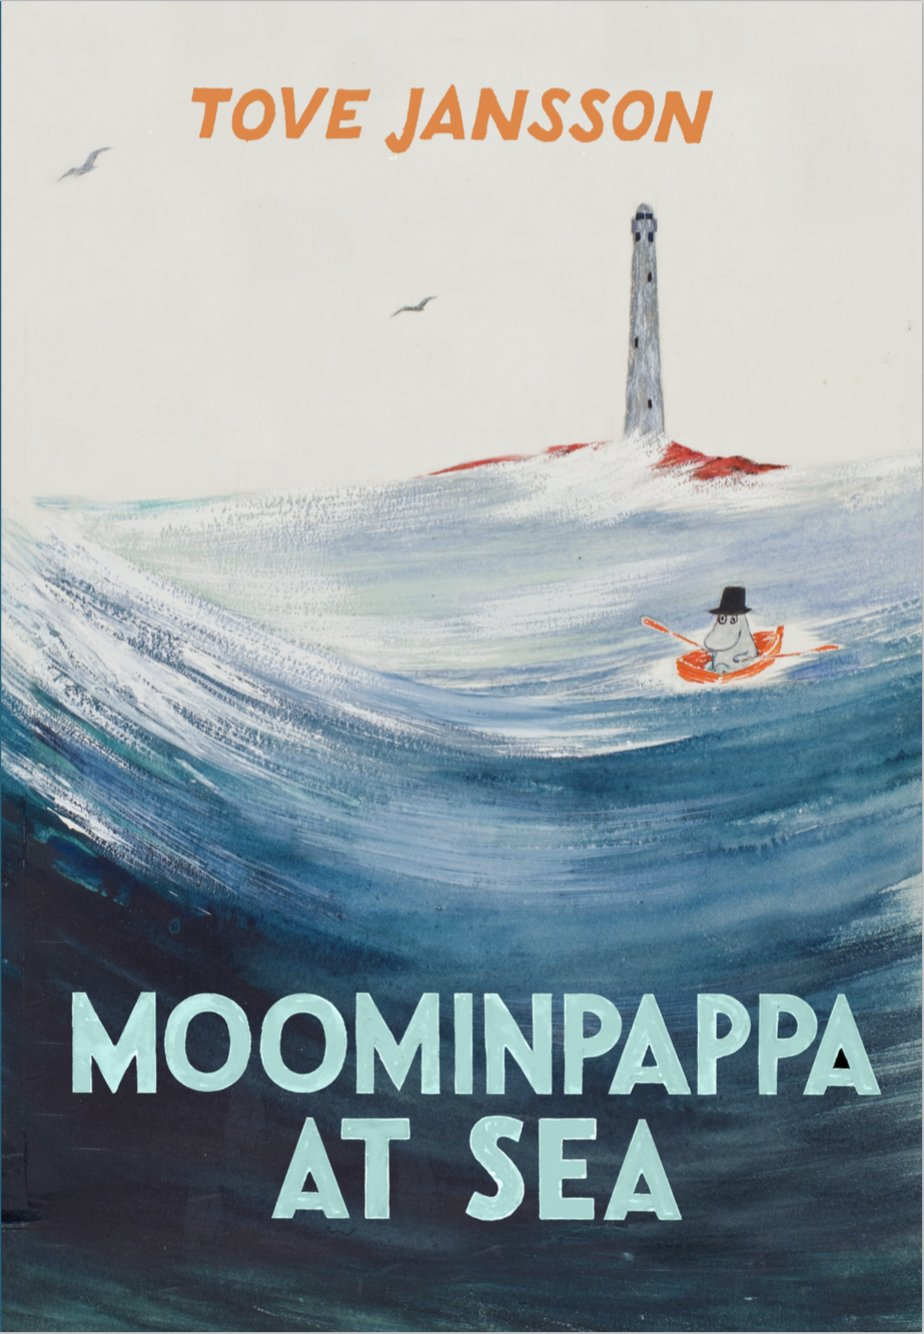 books-in-english-moominpappa-at-sea-collectors-edition-sort-of-books-1_768x